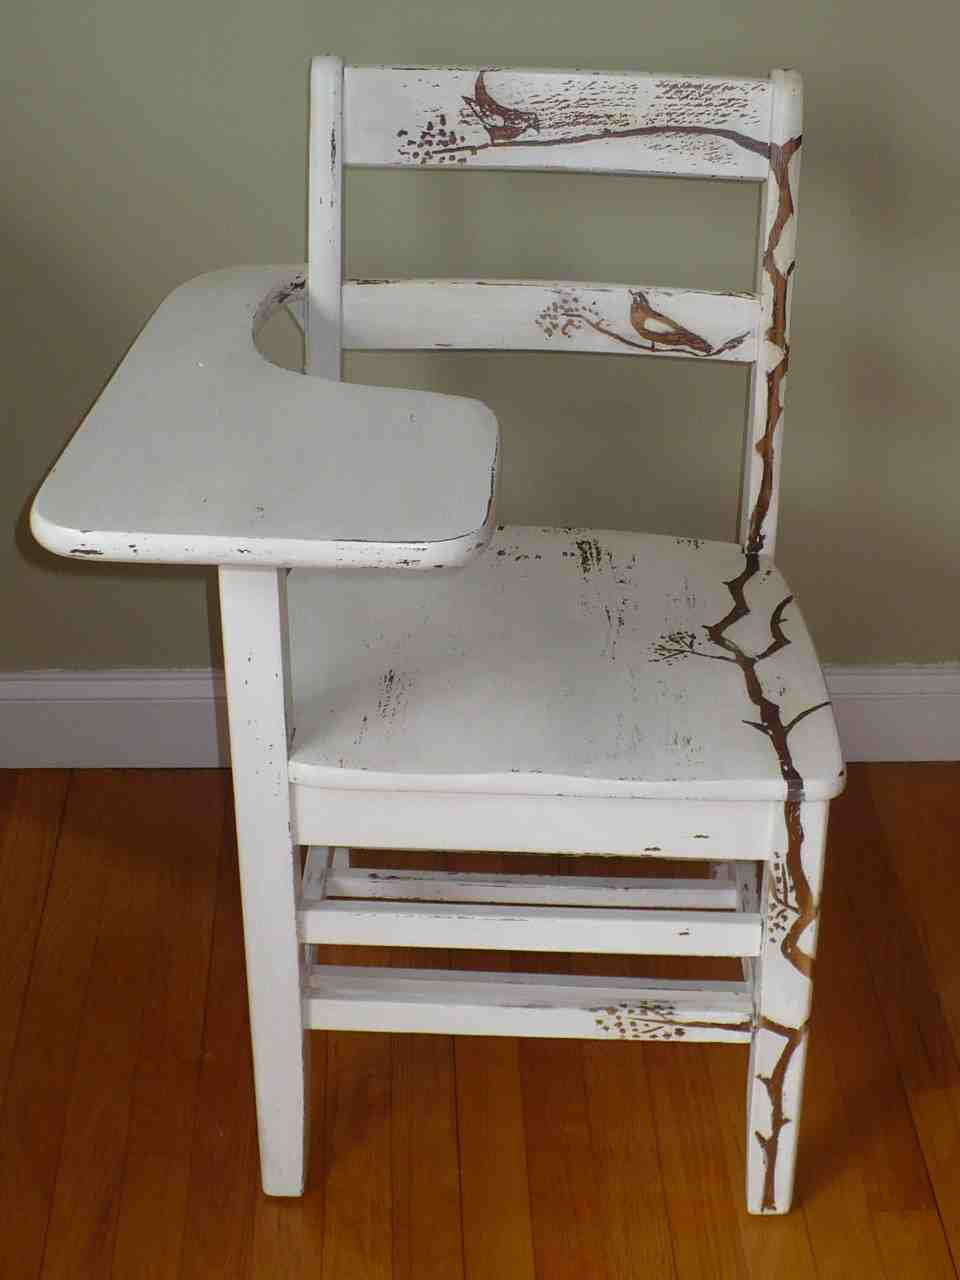 Old School Desk Chair - Home Furniture Design